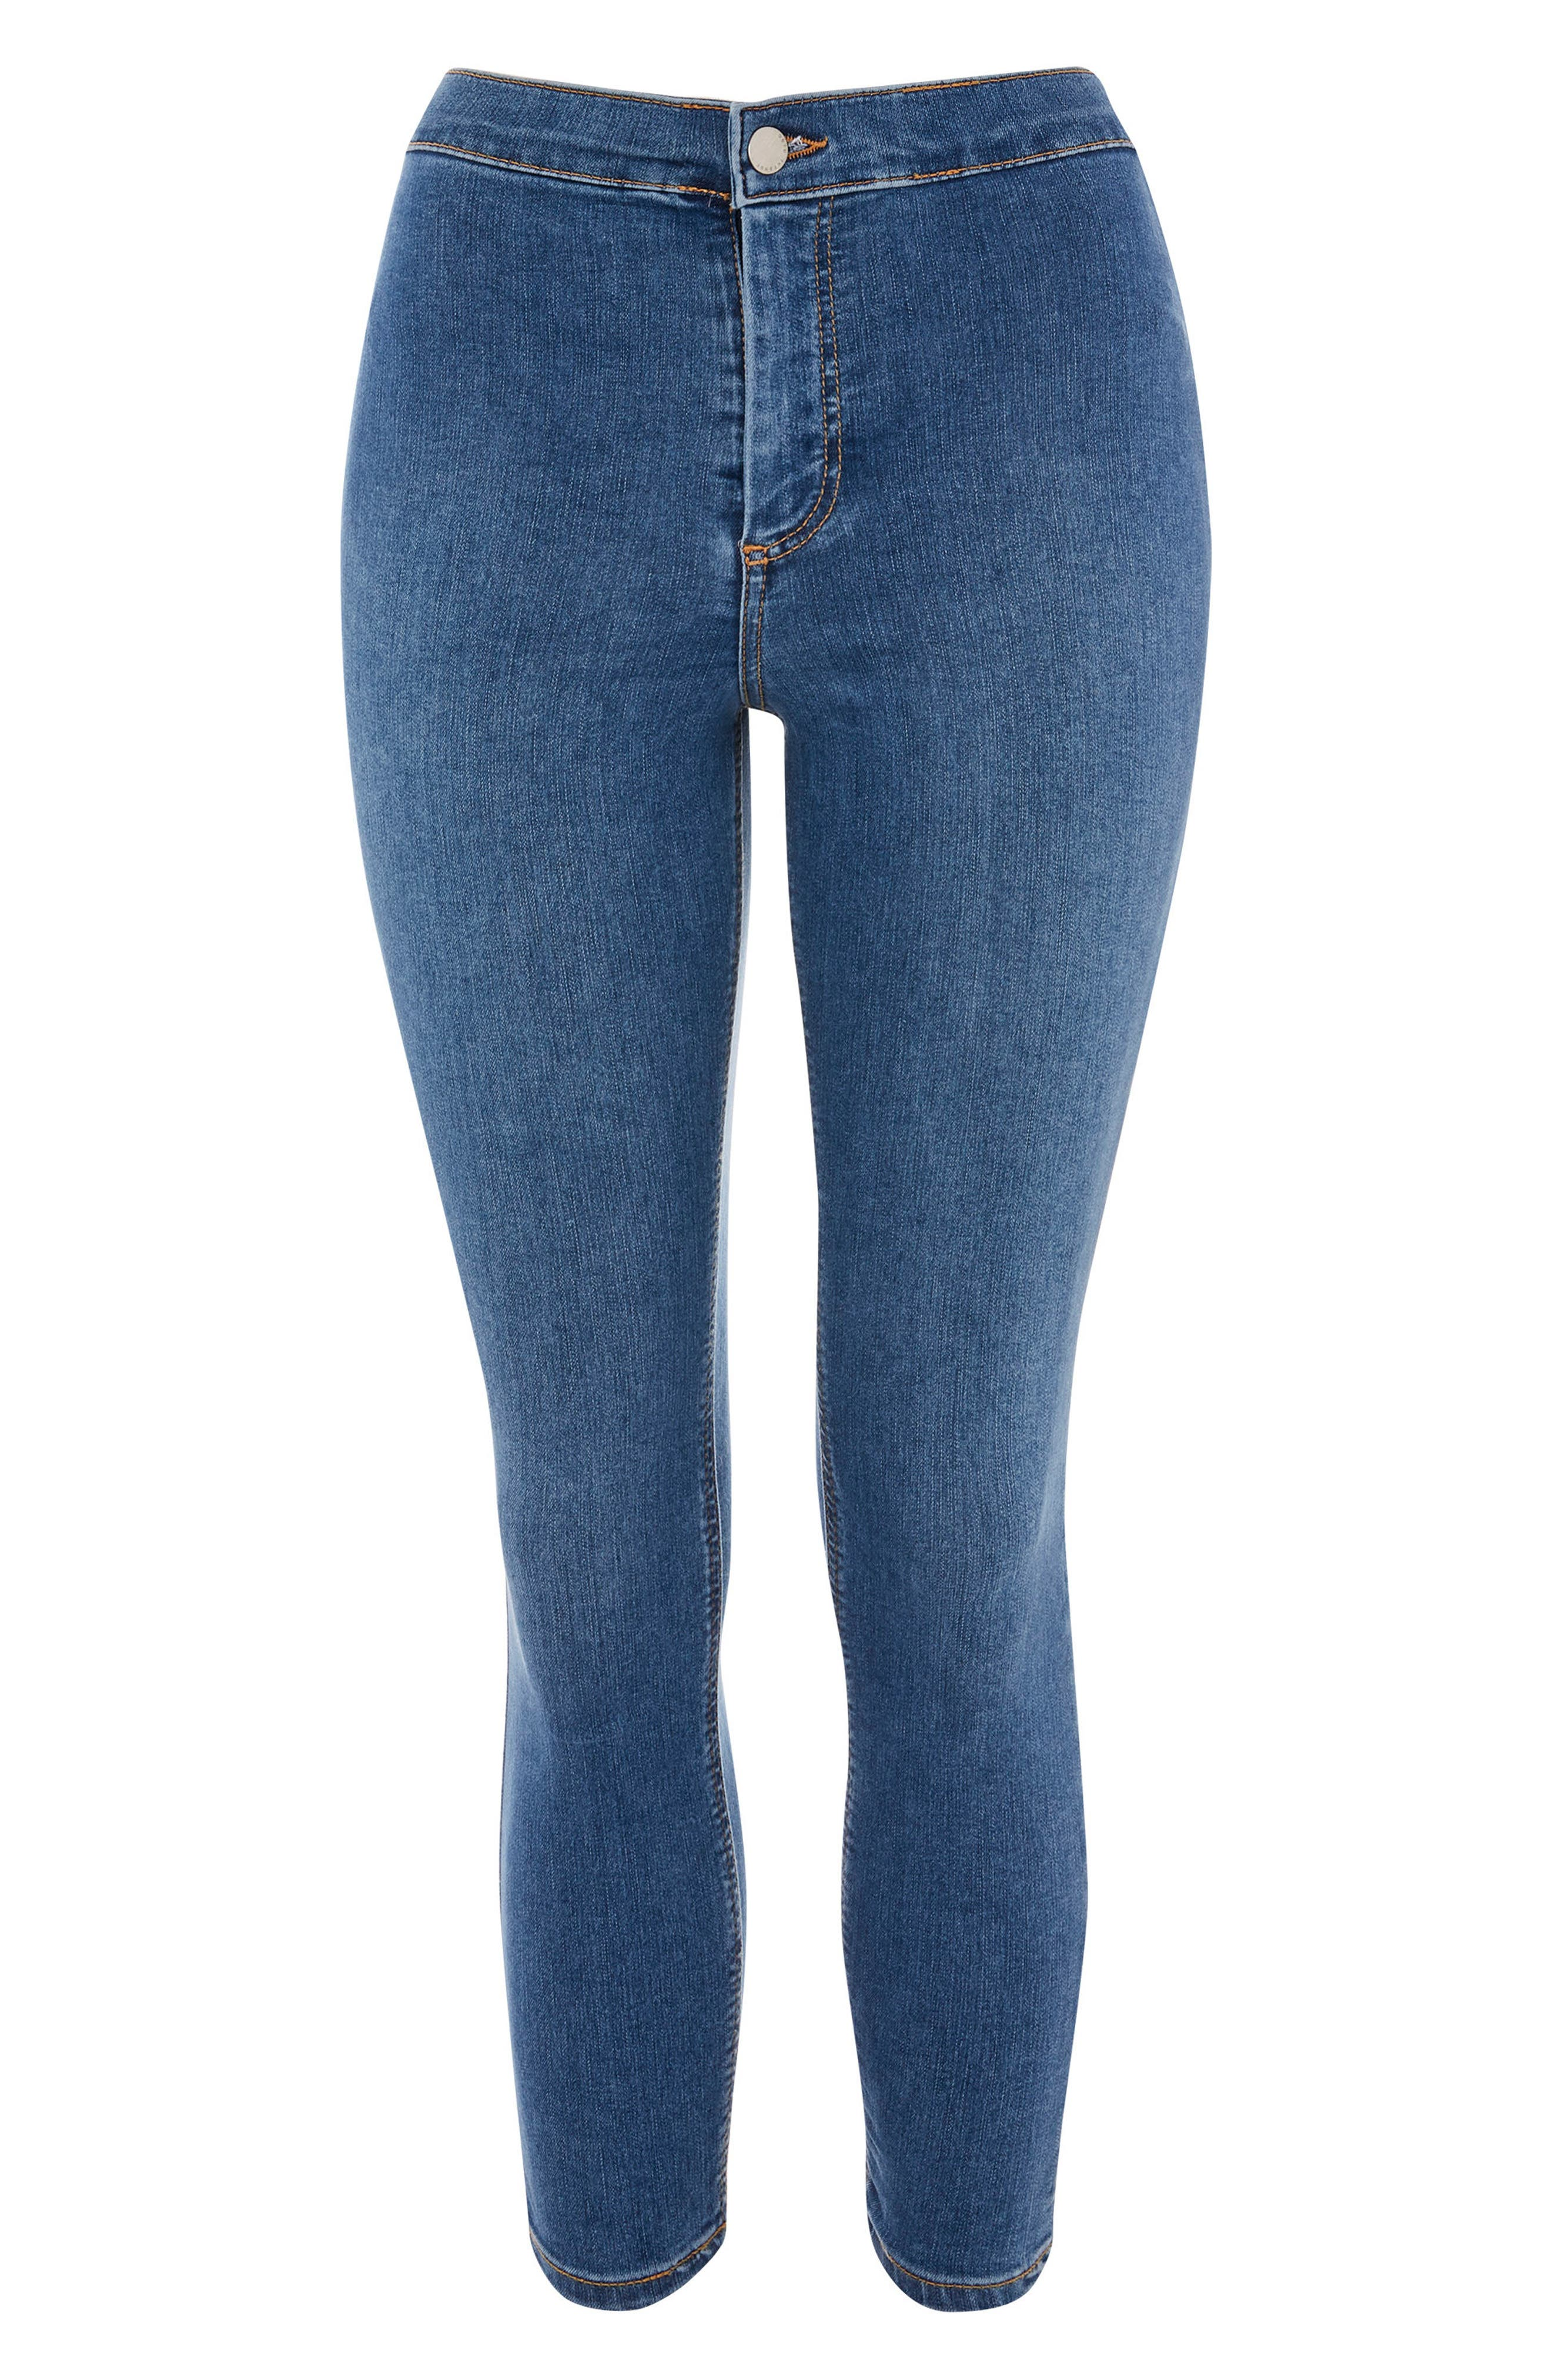 Joni Skinny Jeans,                             Alternate thumbnail 4, color,                             Mid Denim